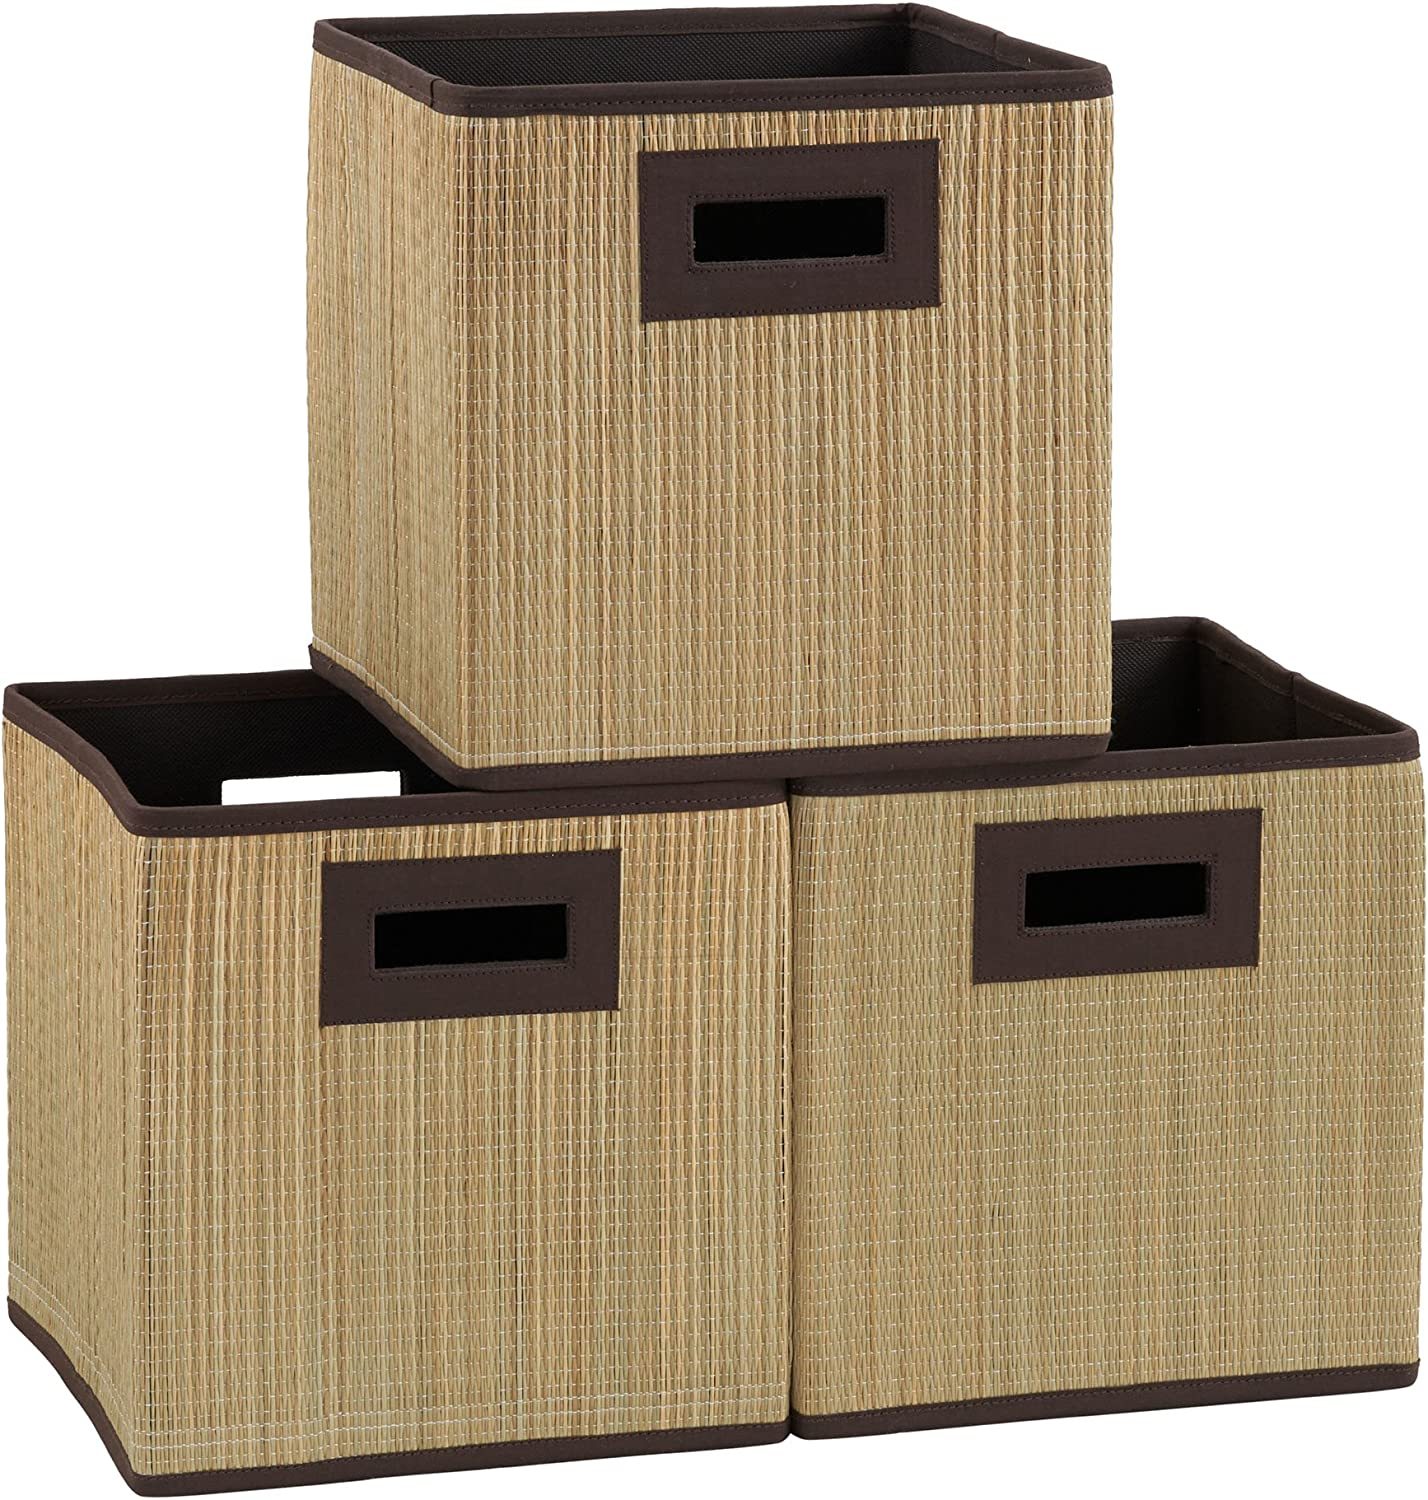 Grass Cloth Wicker Bin Premium Fabric Storage Cubes Household Essentials ML-7070 3 pk Brown